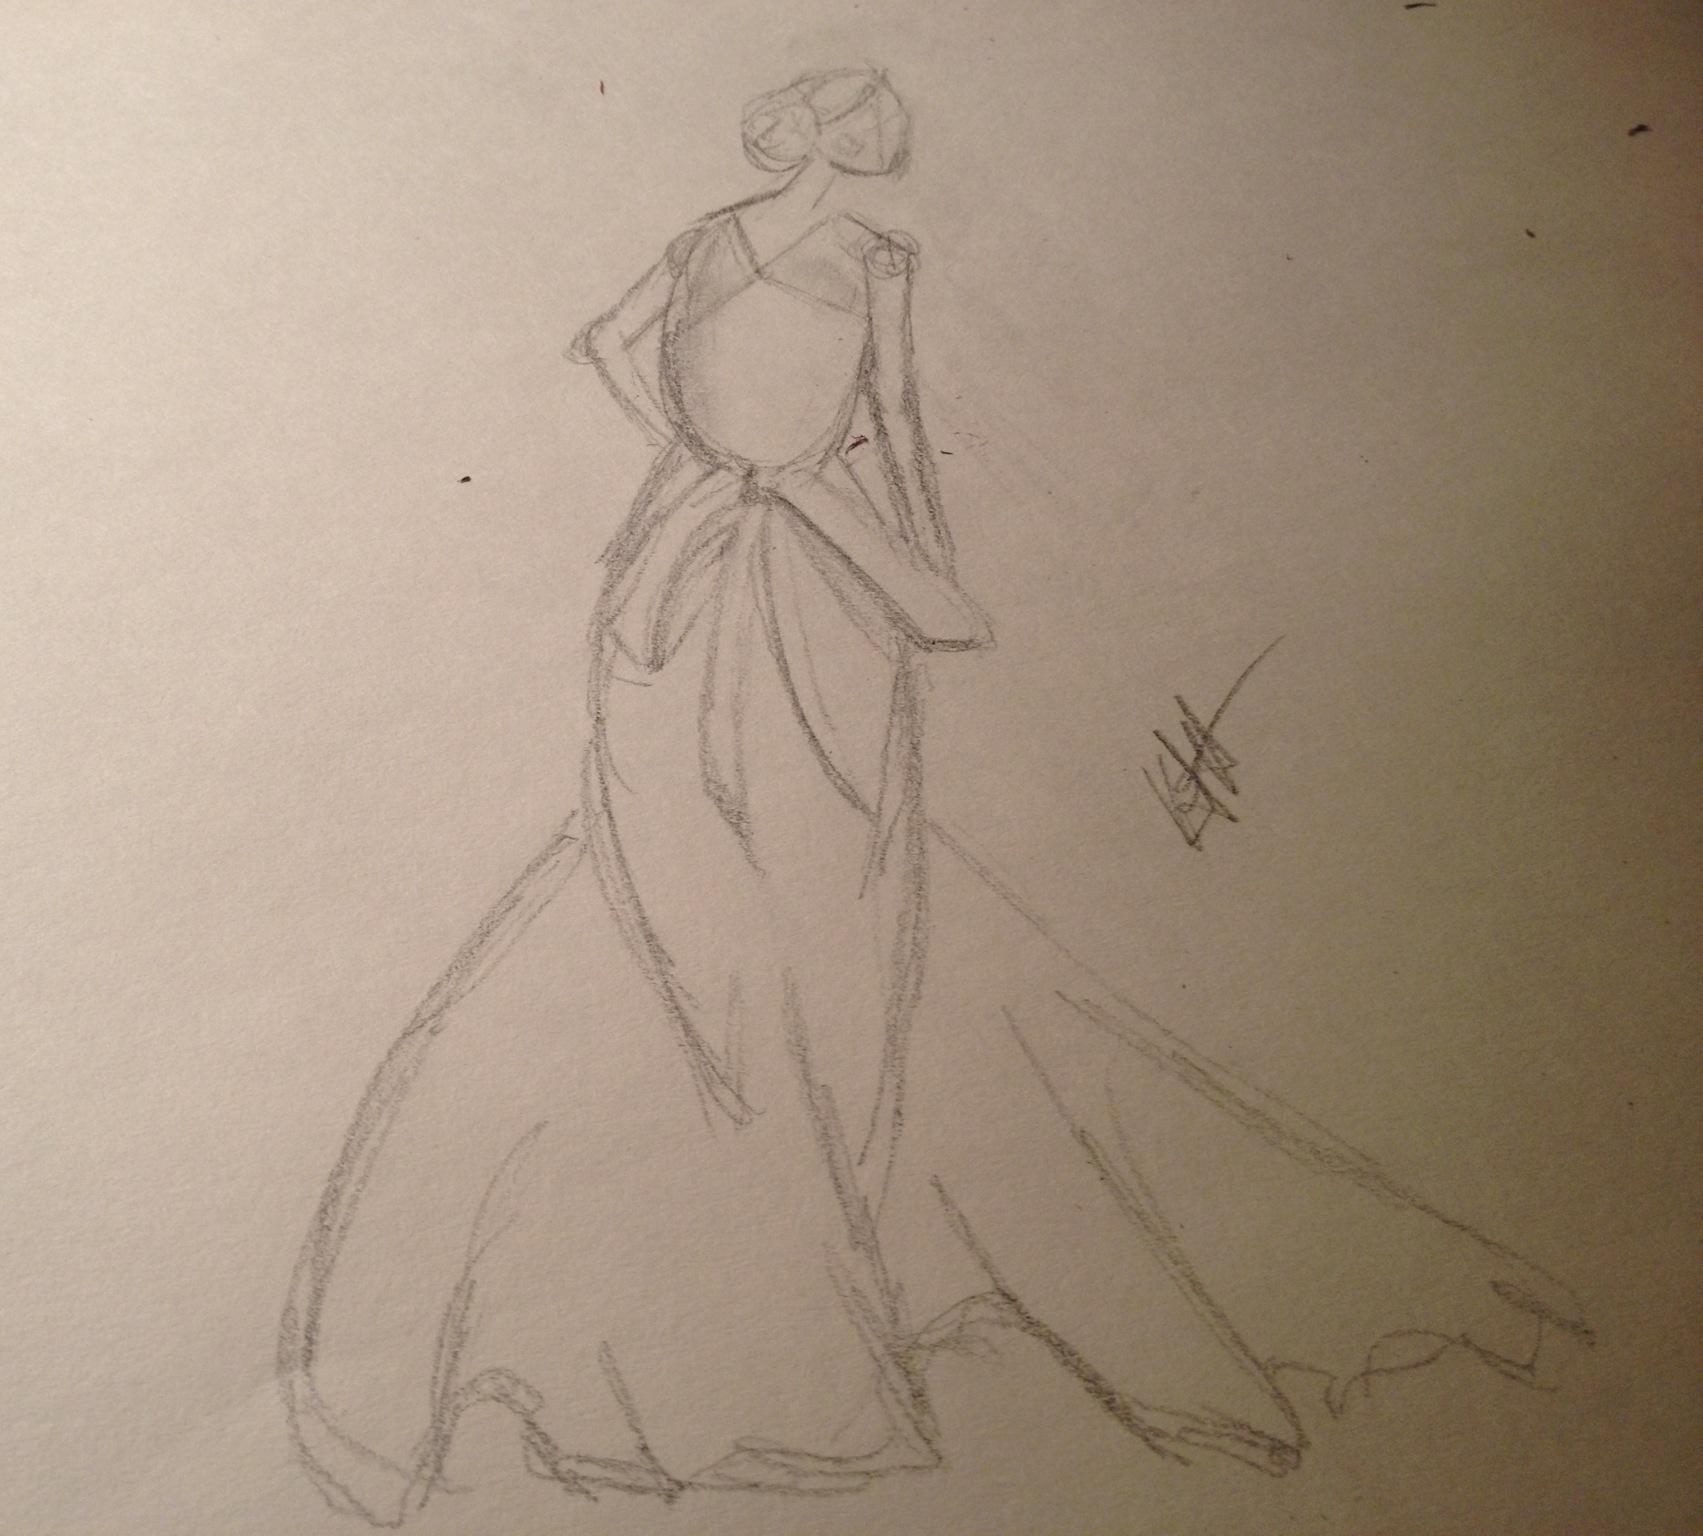 SKETCH: Delicate Details  - image 1 - student project